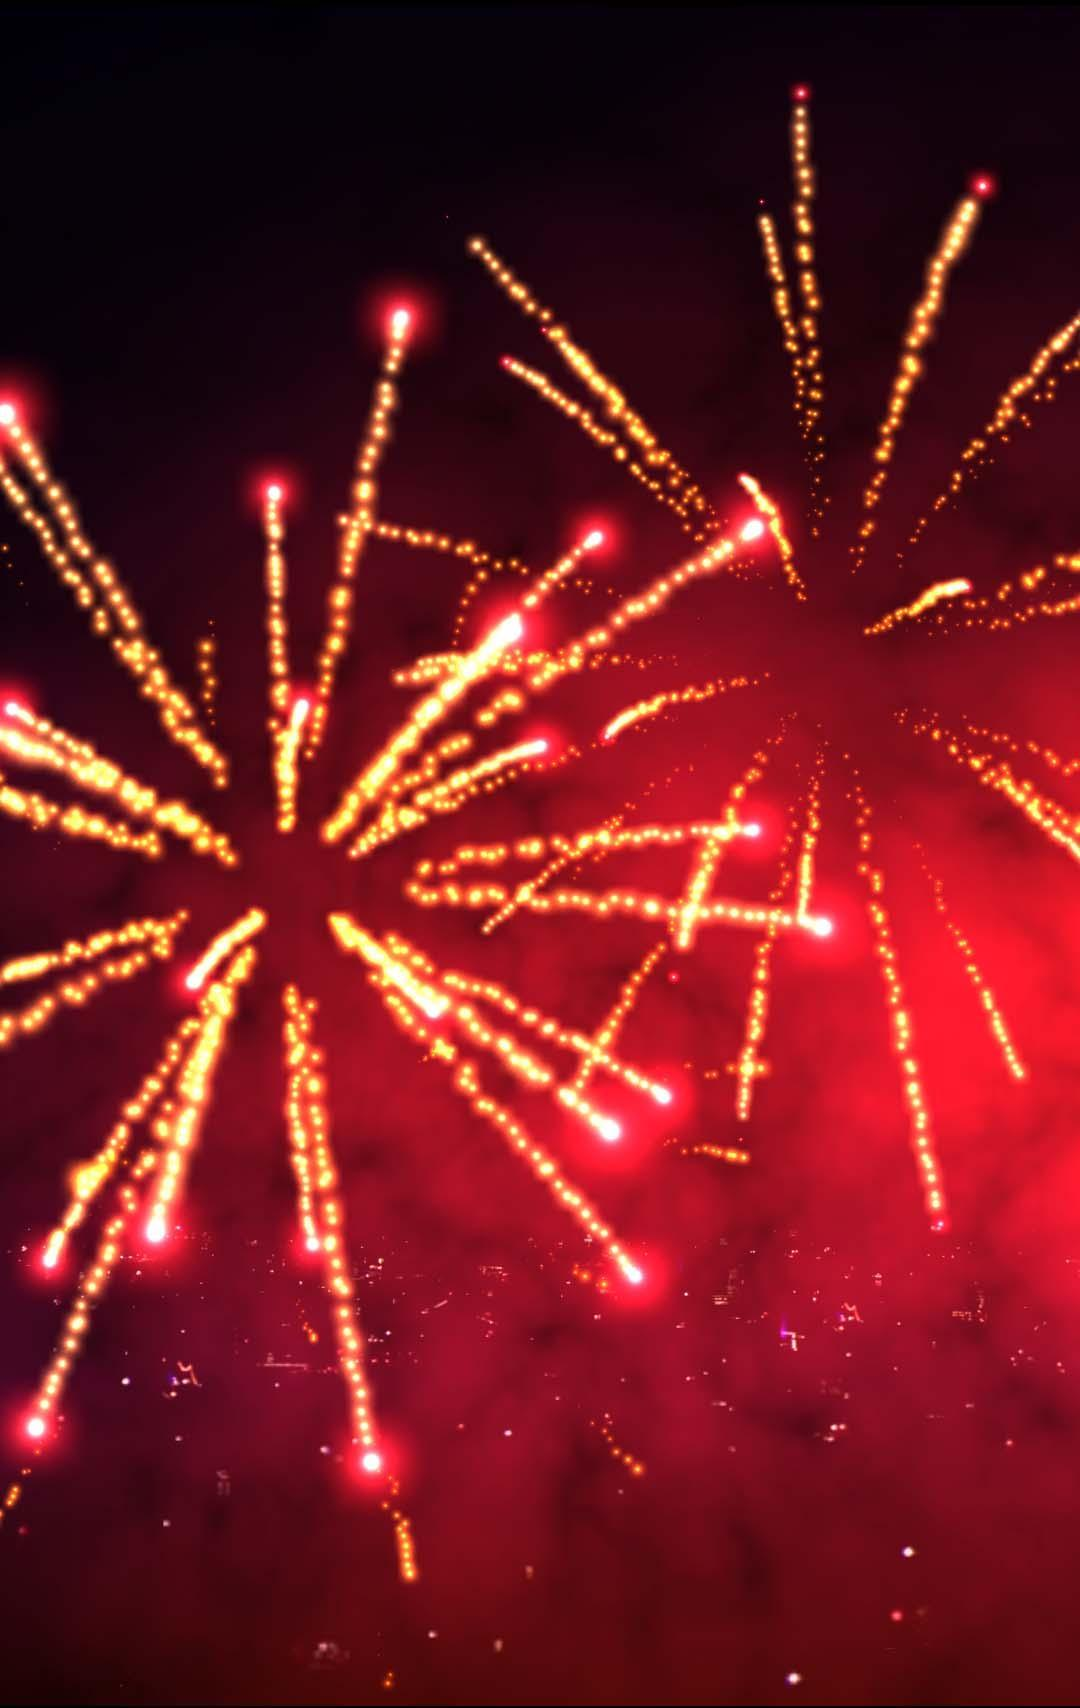 3D Fireworks Wallpaper Free For Android APK Download